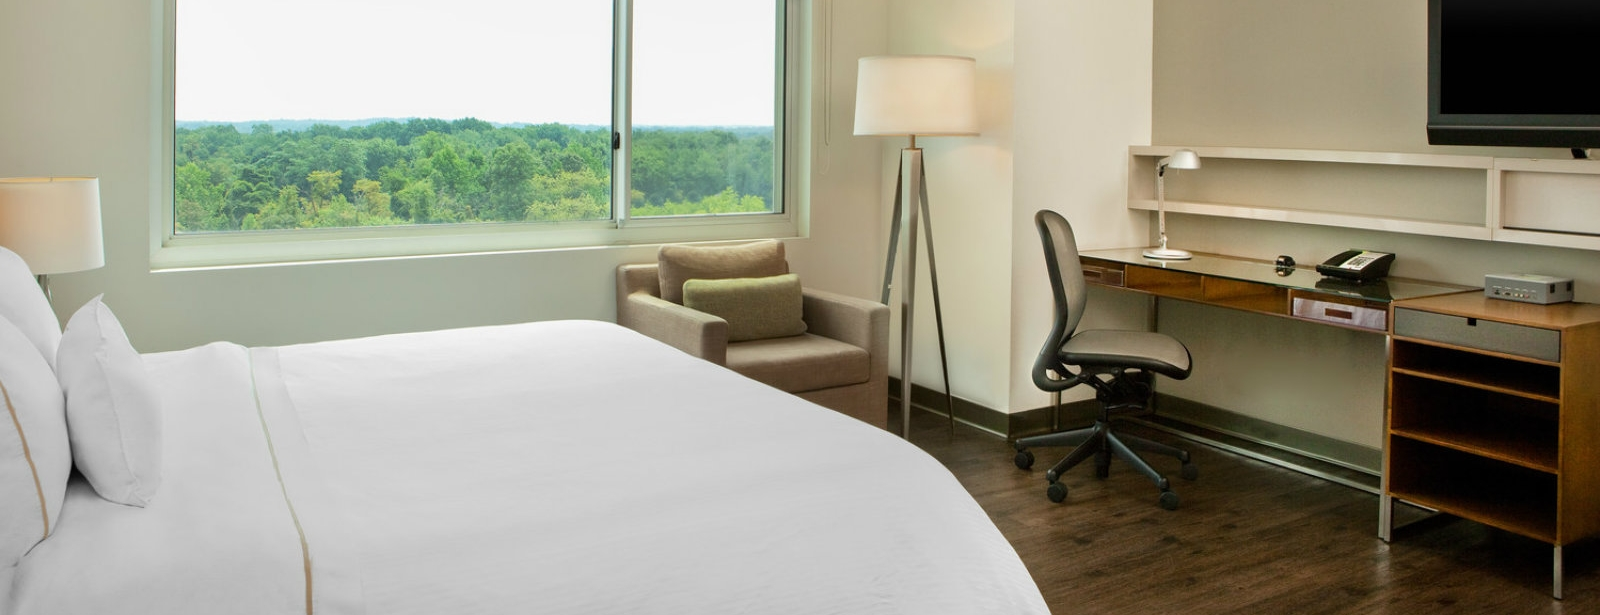 Arundel Mills Accommodations - Standard Guest Room